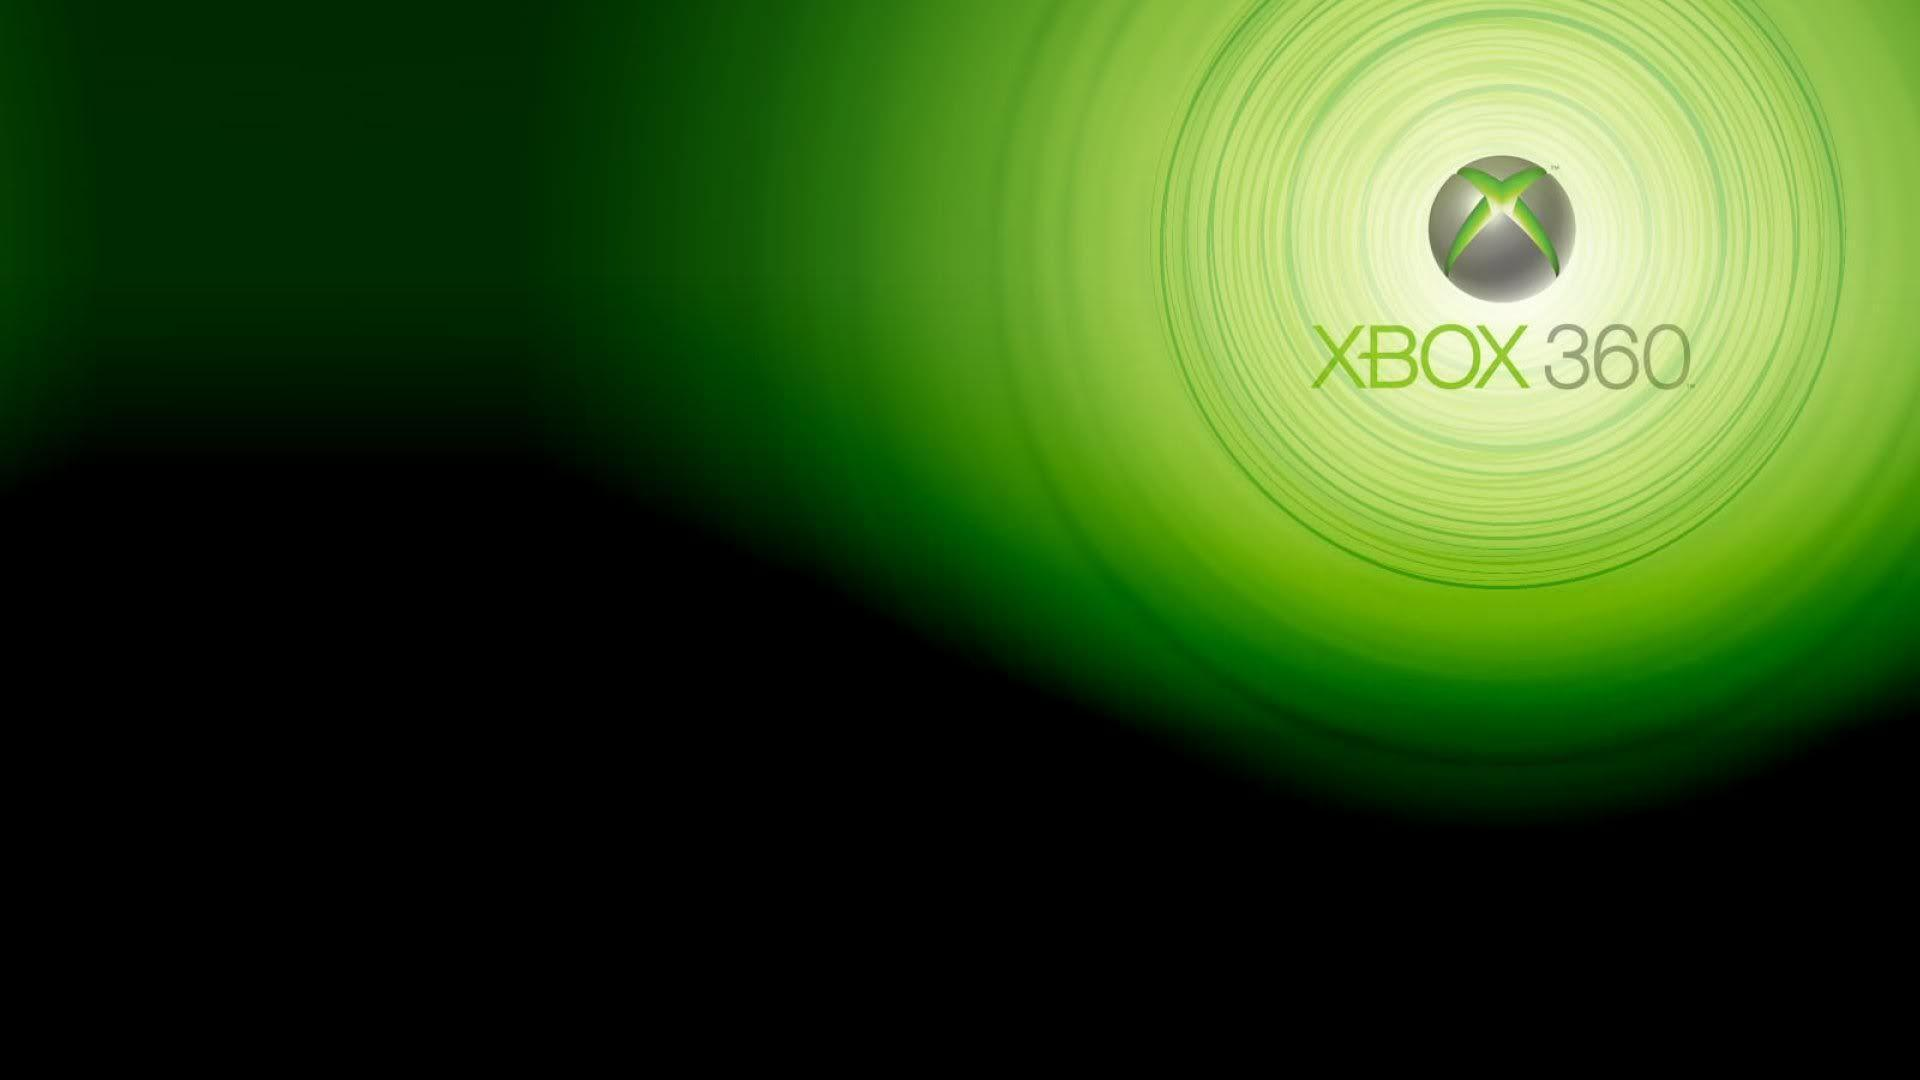 Xbox 360 Wallpapers Hd Wallpaper Cave